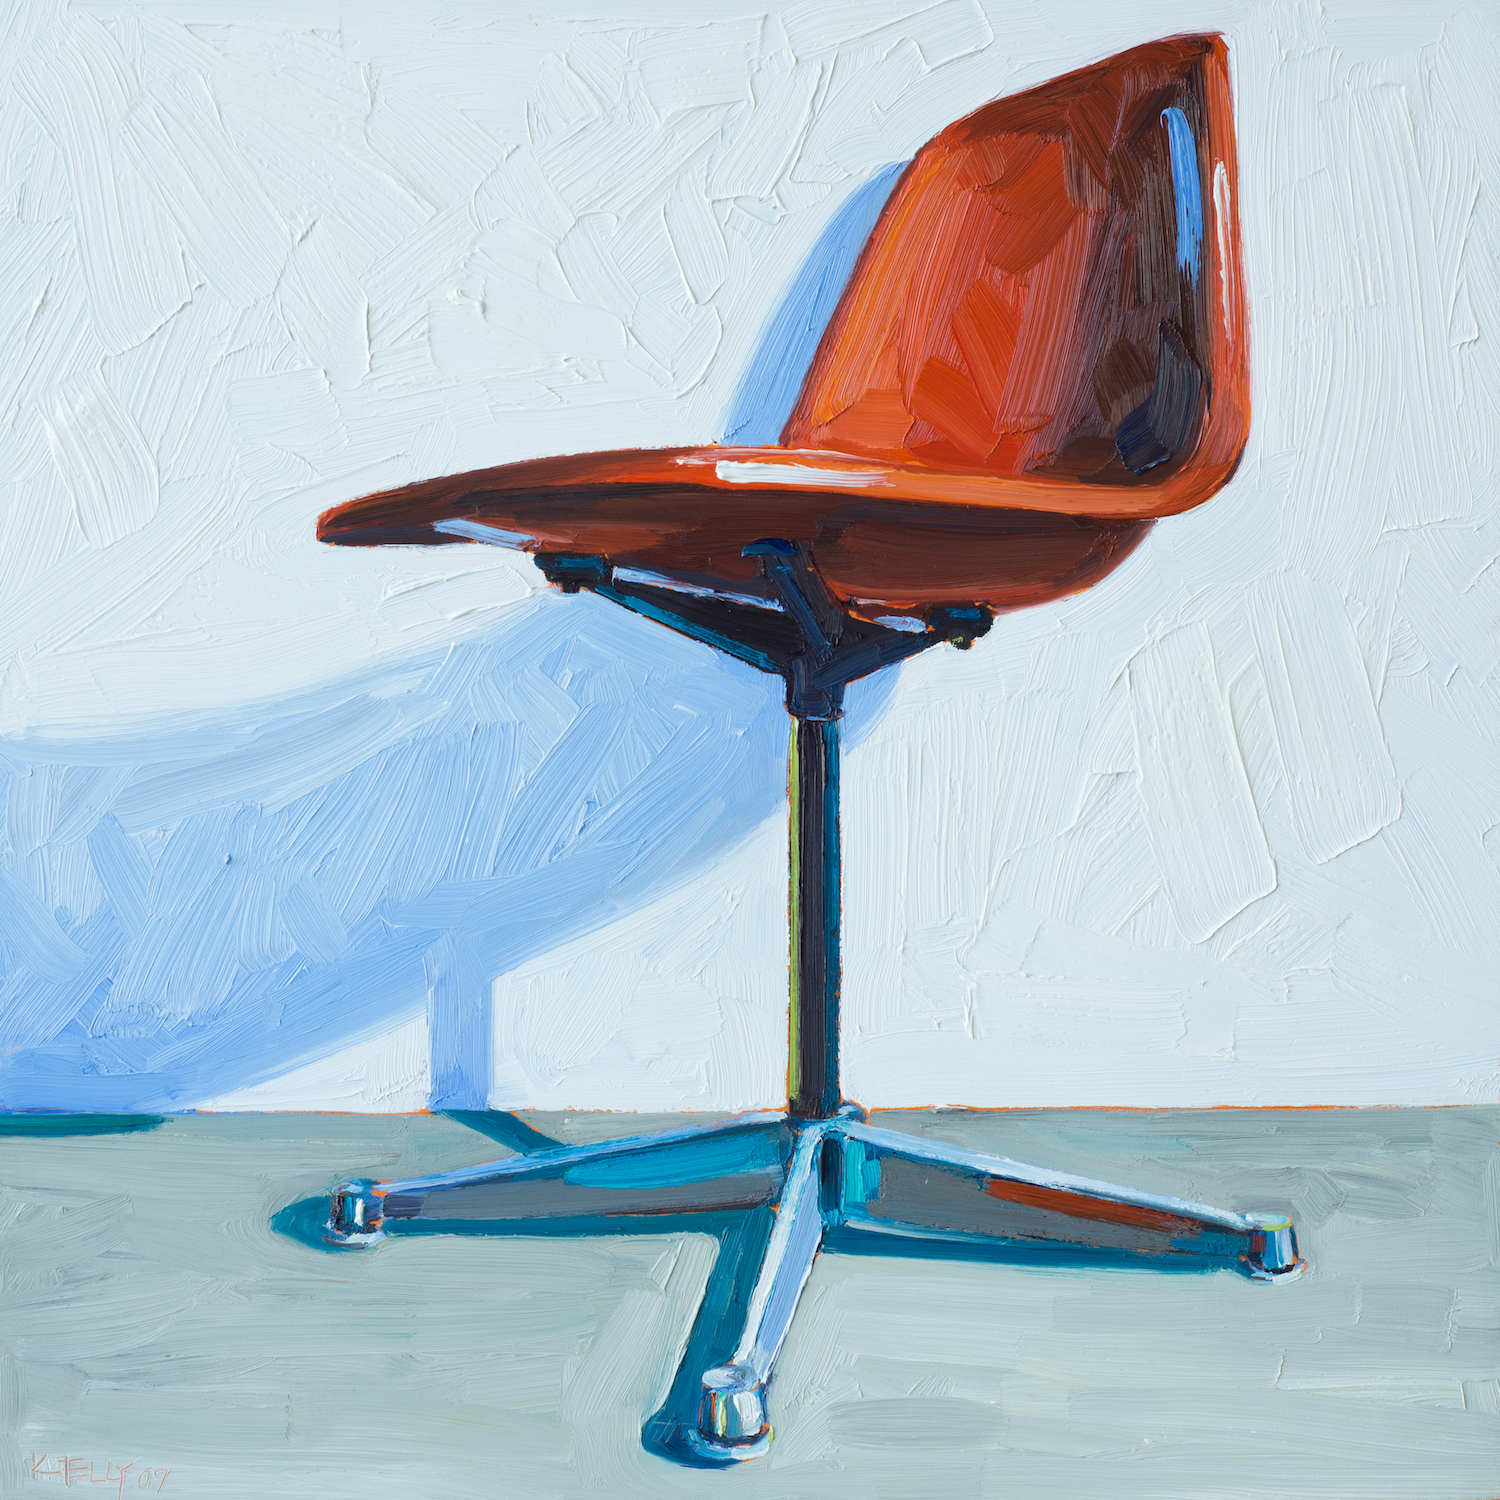 Eames Rust Side Chair Right View, 2007